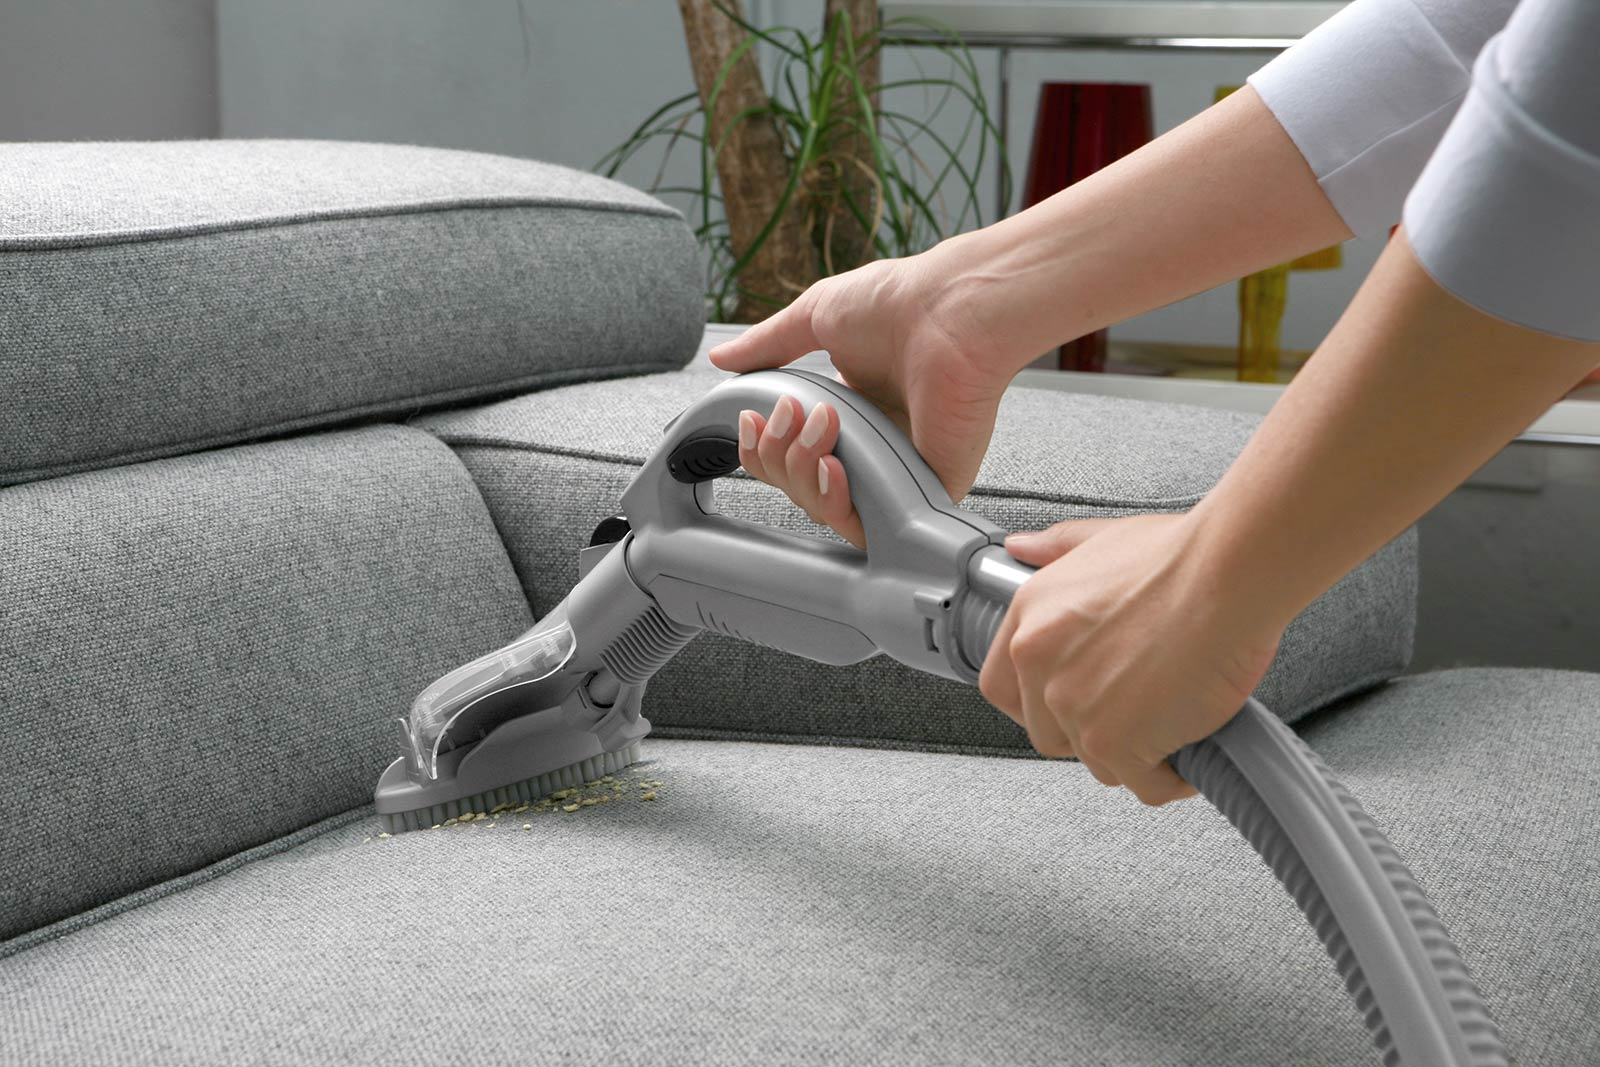 Sofa Cleaning: Tips & Products to Clean Your Sofa | EarlyExperts